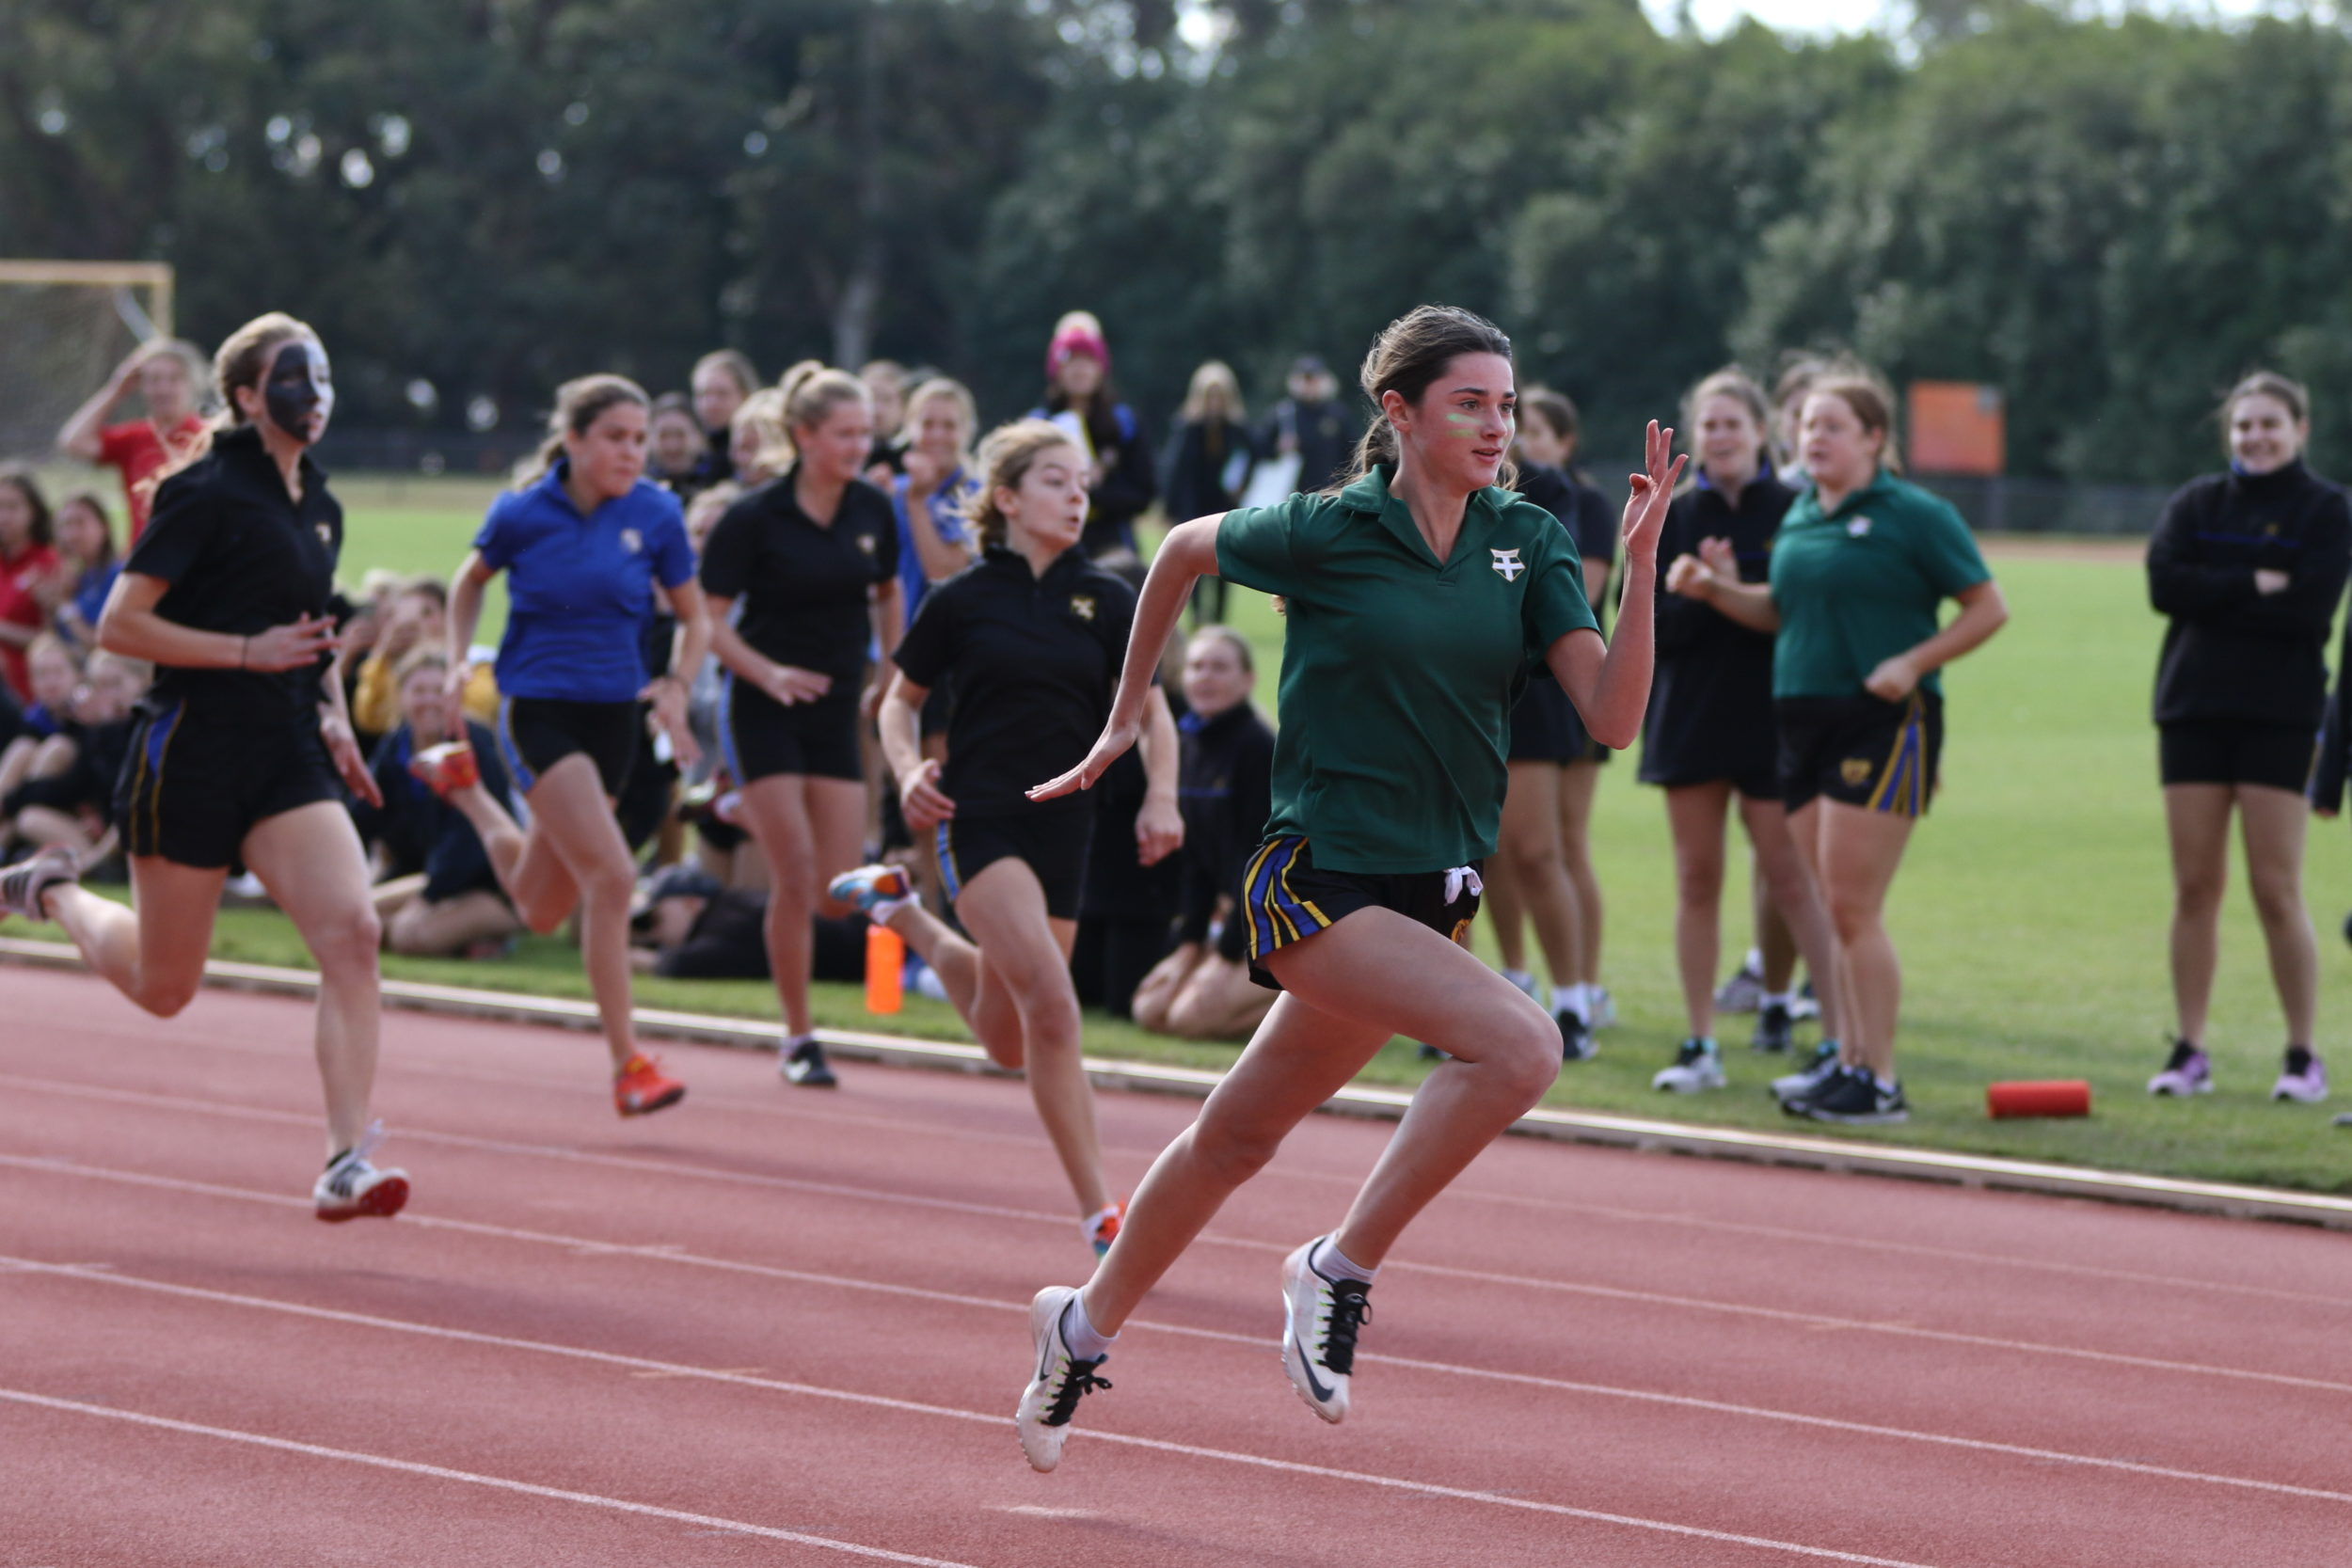 5 Life Lessons for Girls to Learn by Participating in Sport